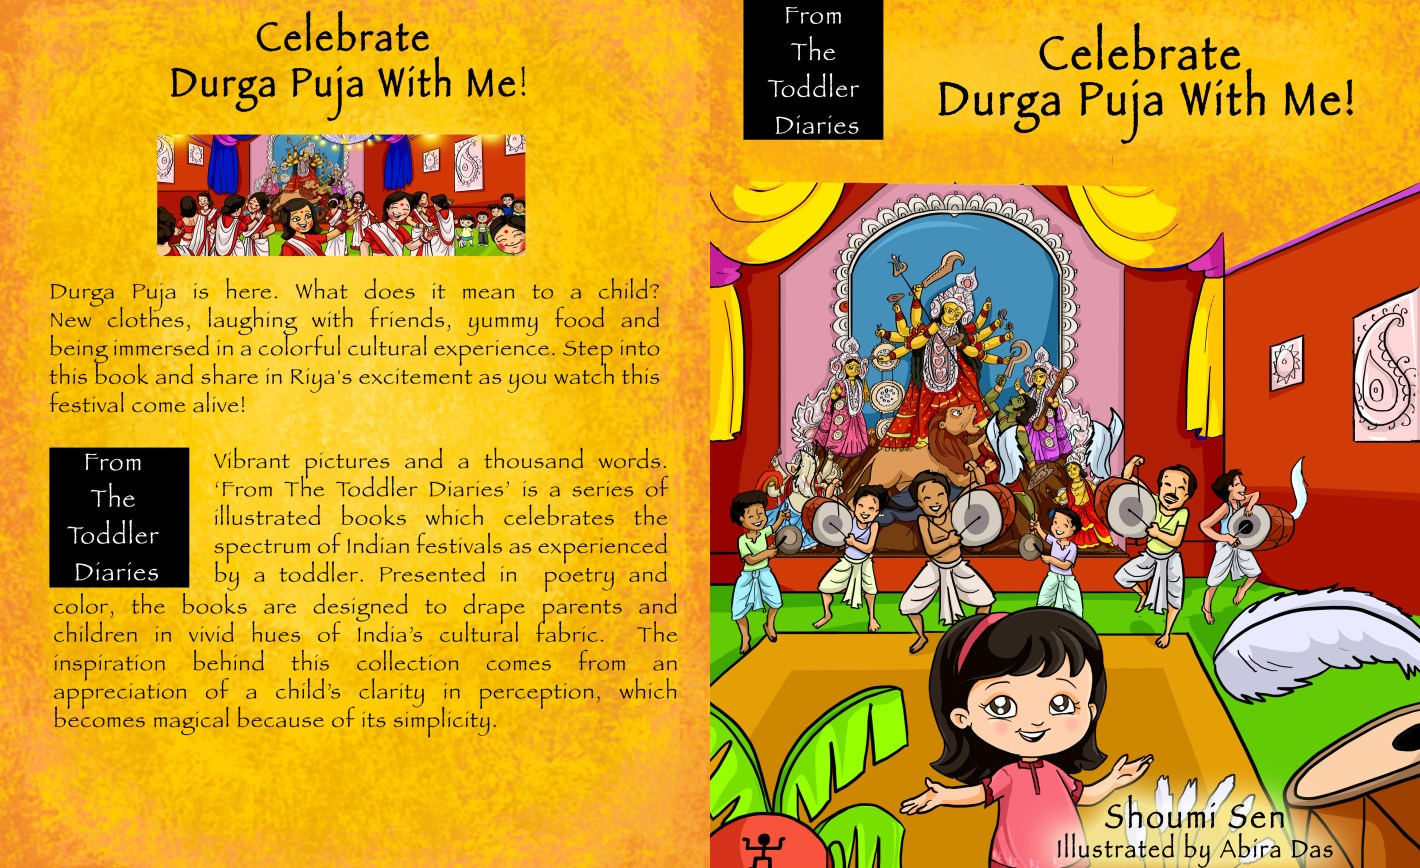 Celebrate Durga Puja With Me